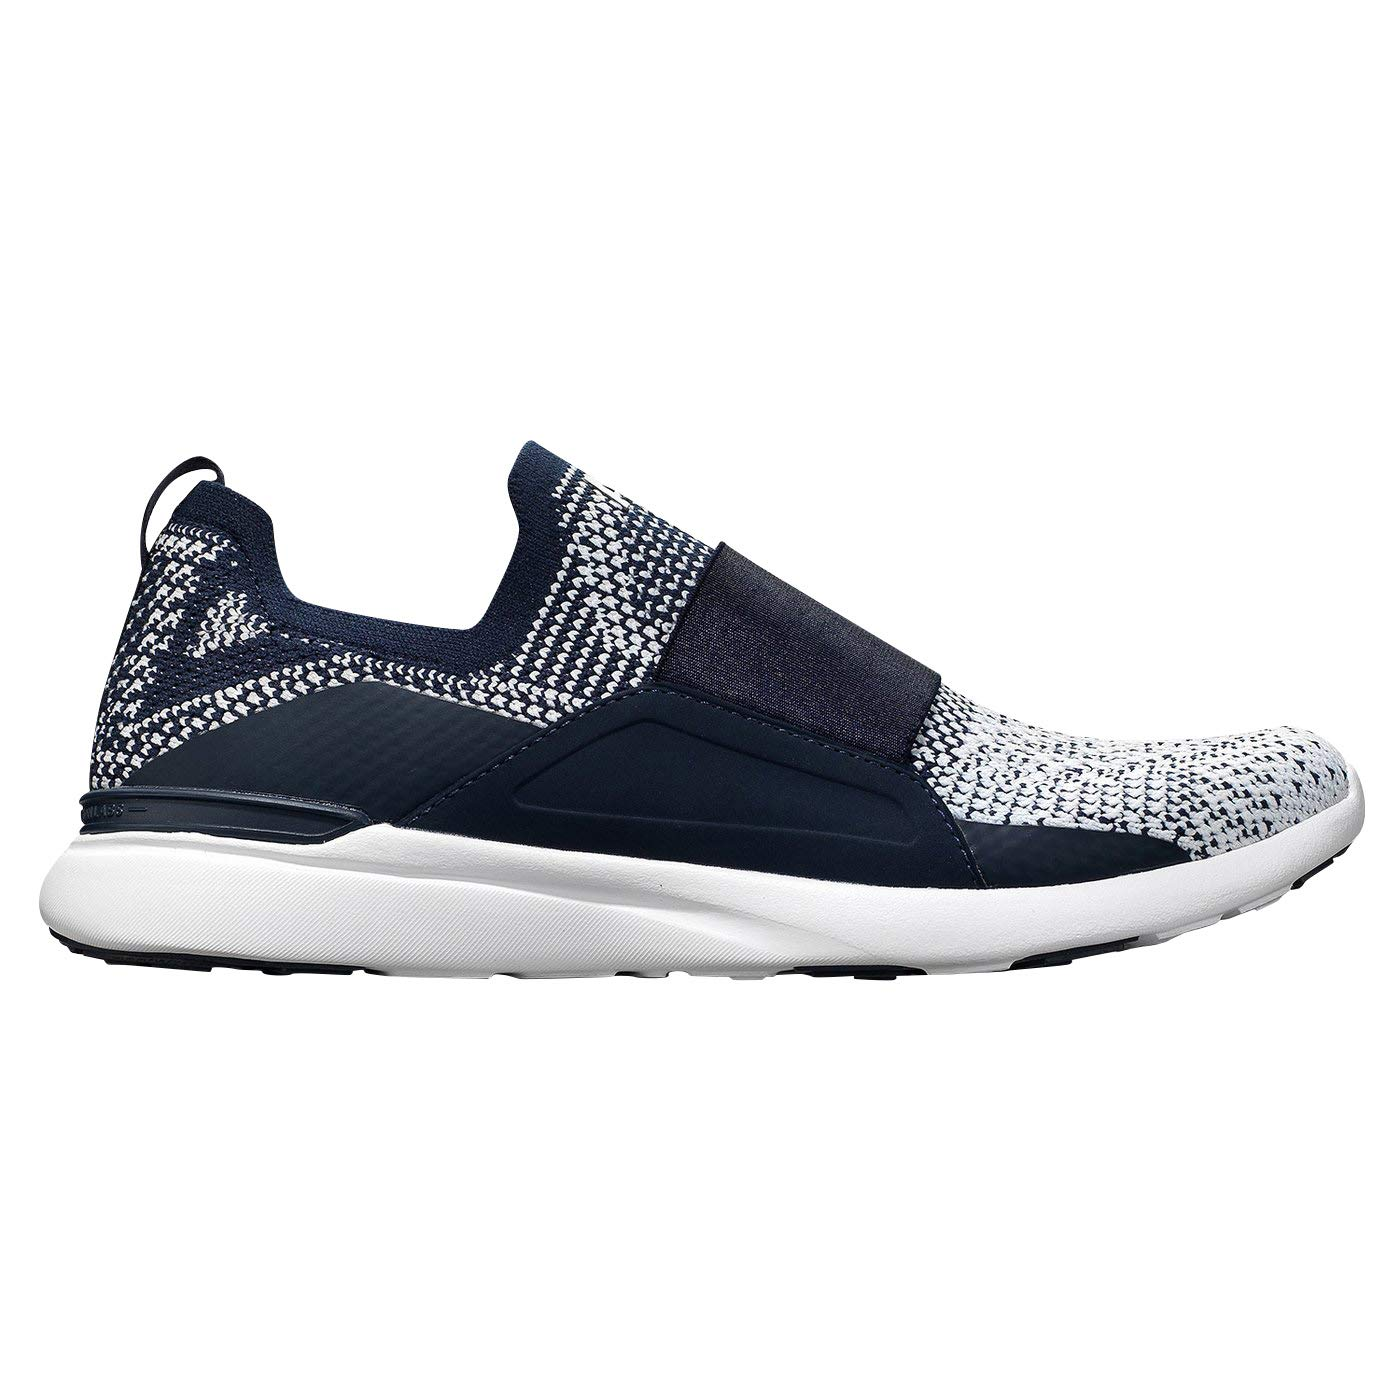 Image of APL: Athletic Propulsion Labs Women's Techloom Bliss Sneaker (10, Midnight/White/Ombre) Fitness & Cross-Training